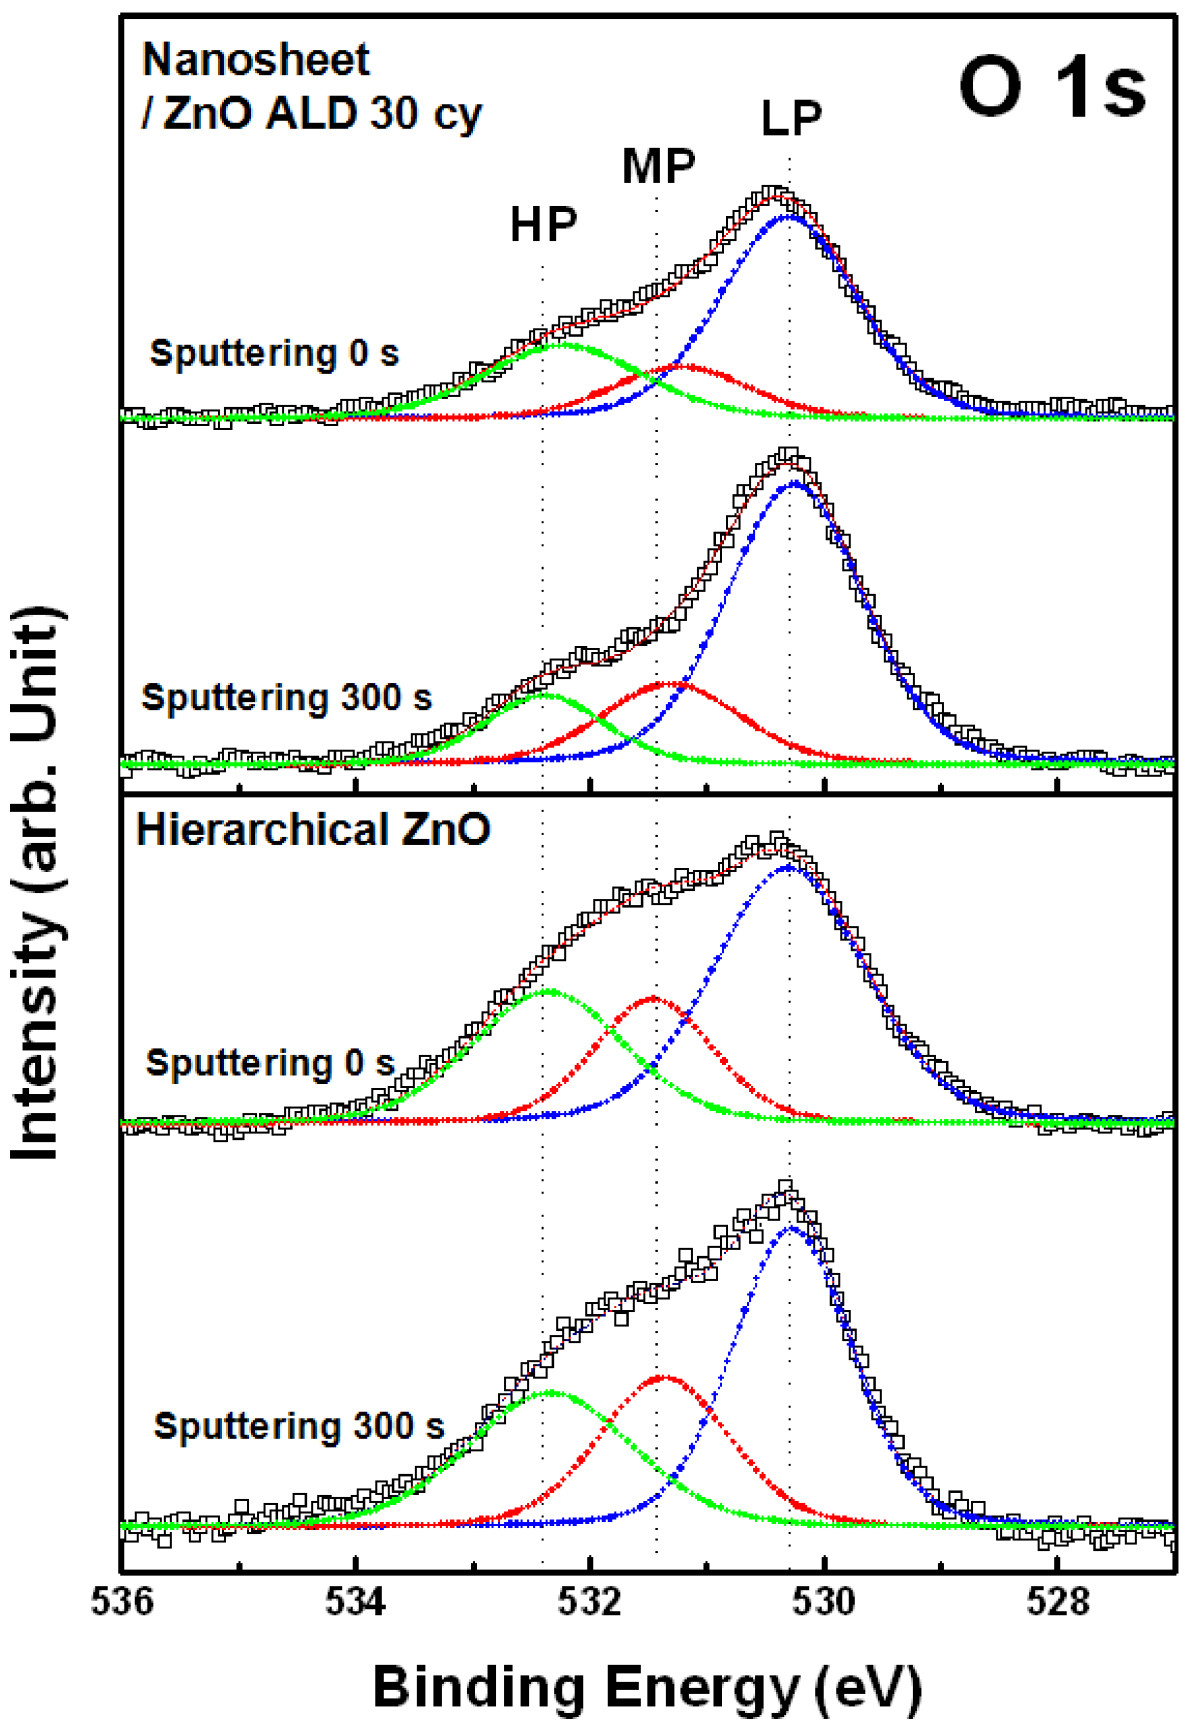 http://static-content.springer.com/image/art%3A10.1186%2F1556-276X-7-290/MediaObjects/11671_2012_Article_848_Fig8_HTML.jpg